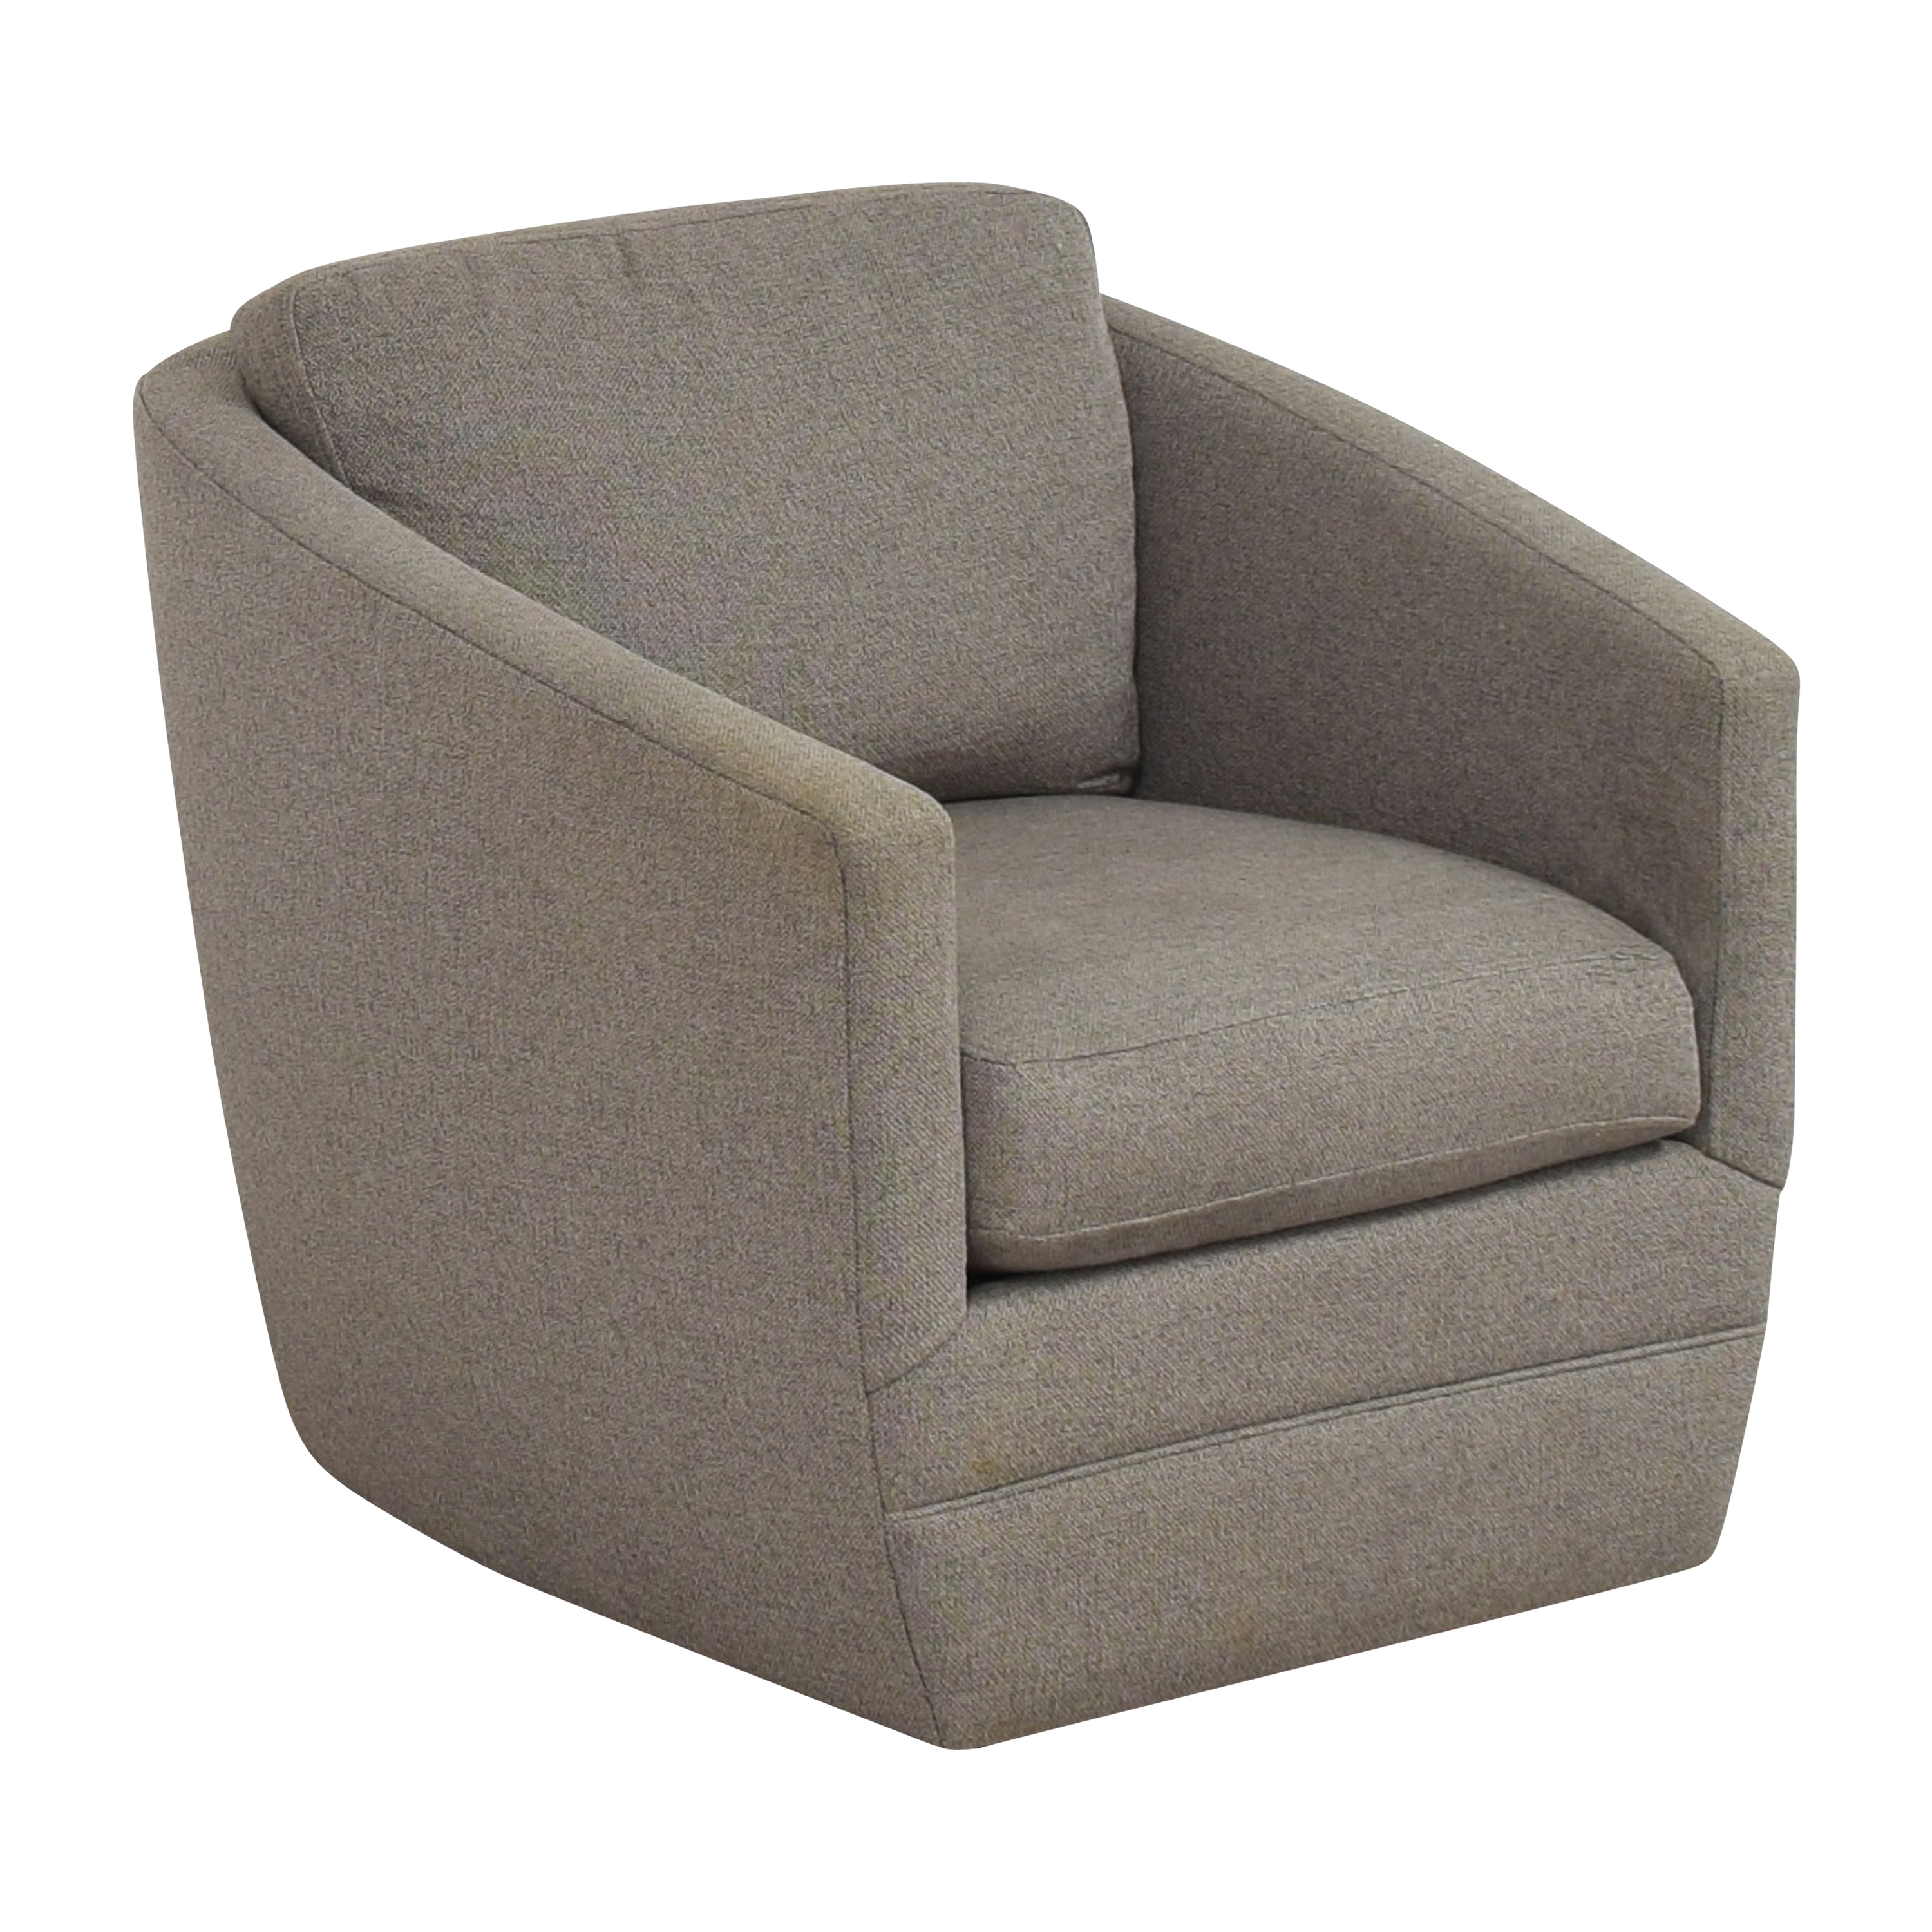 Room & Board Ford Swivel Chair / Accent Chairs